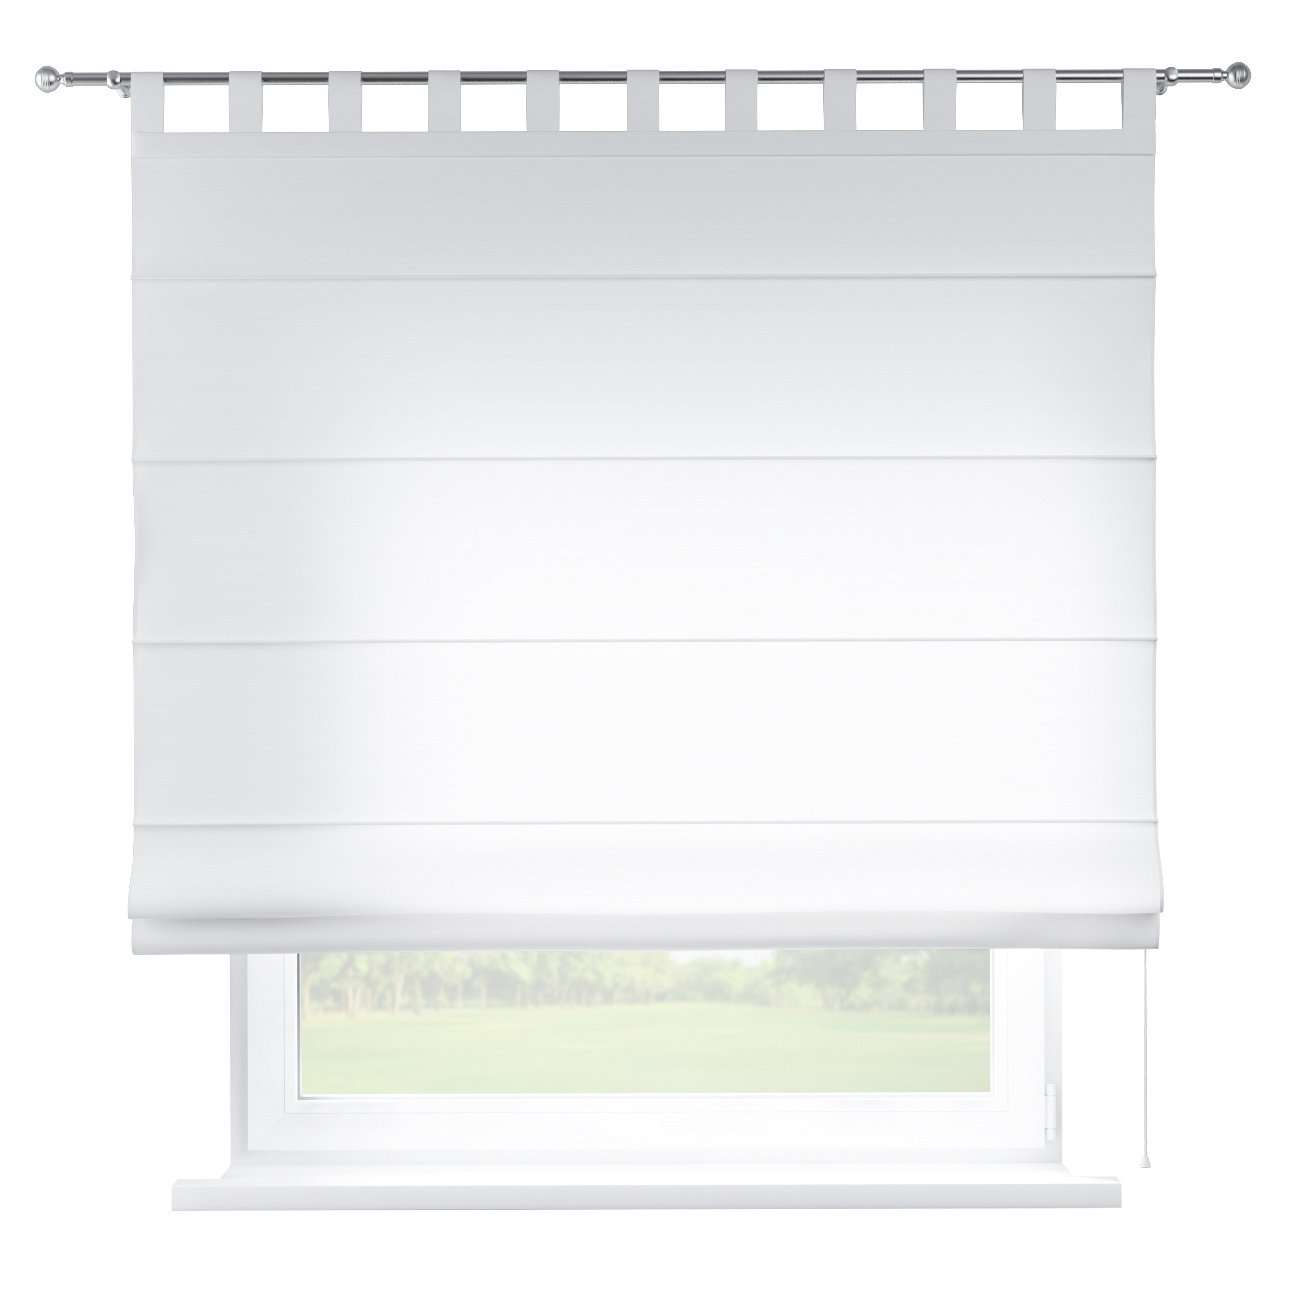 Verona tab top roman blind 80 x 170 cm (31.5 x 67 inch) in collection Jupiter, fabric: 127-01